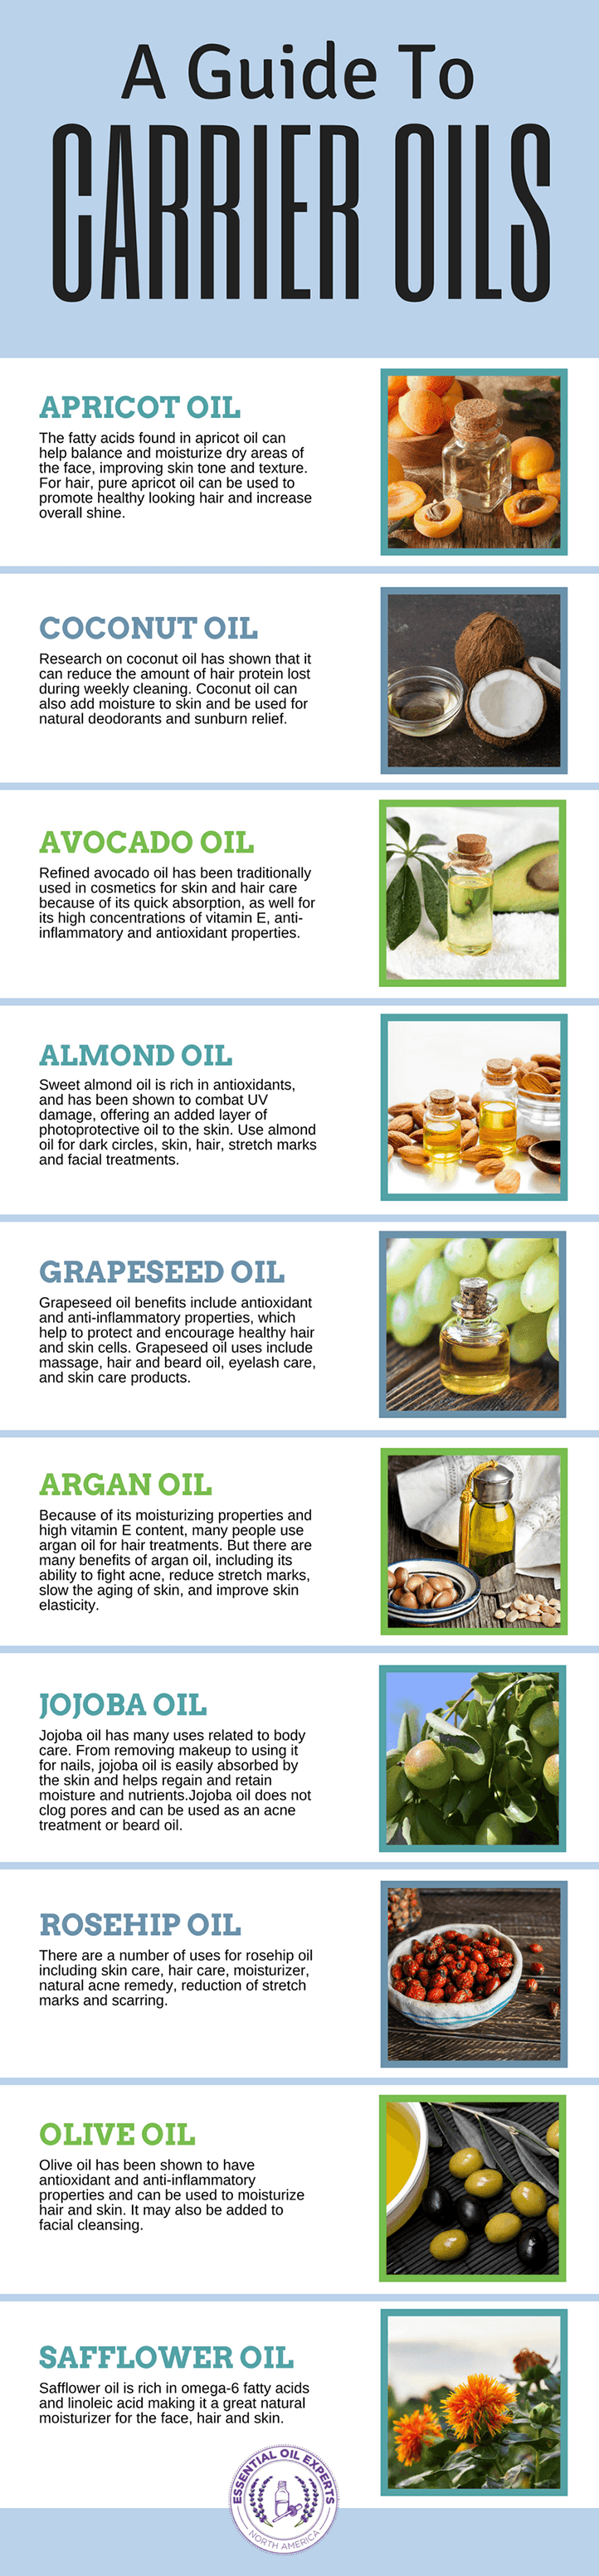 Ultimate Guide to Carrier Oils | EssentialOilExperts.com